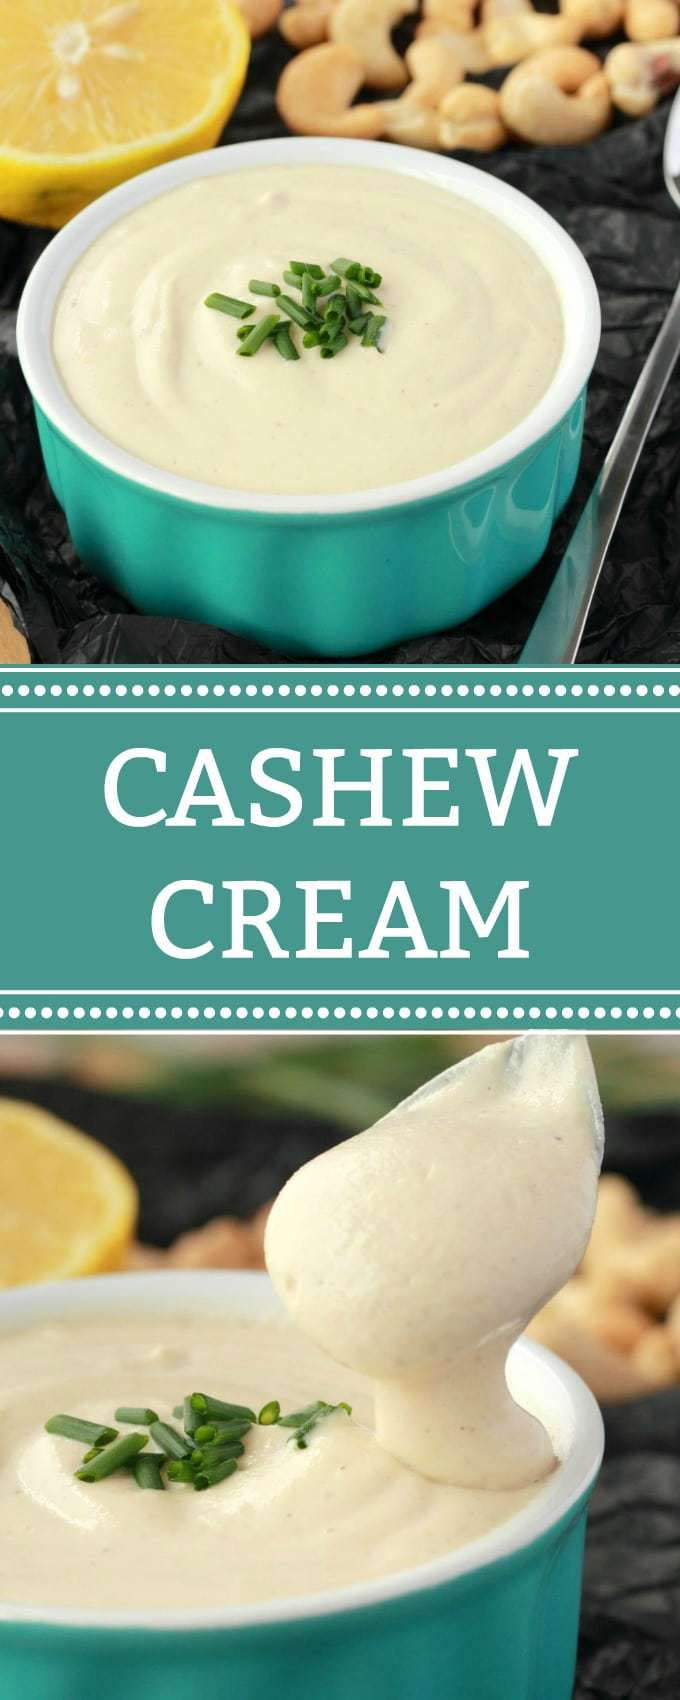 This creamy and delicious 4-ingredient simple vegan cashew cream is great with absolutely everything! It's the perfect blank canvas for a vegan cream that you can flavor as you like, or have as is as the perfect cream substitute. | lovingitvegan.com